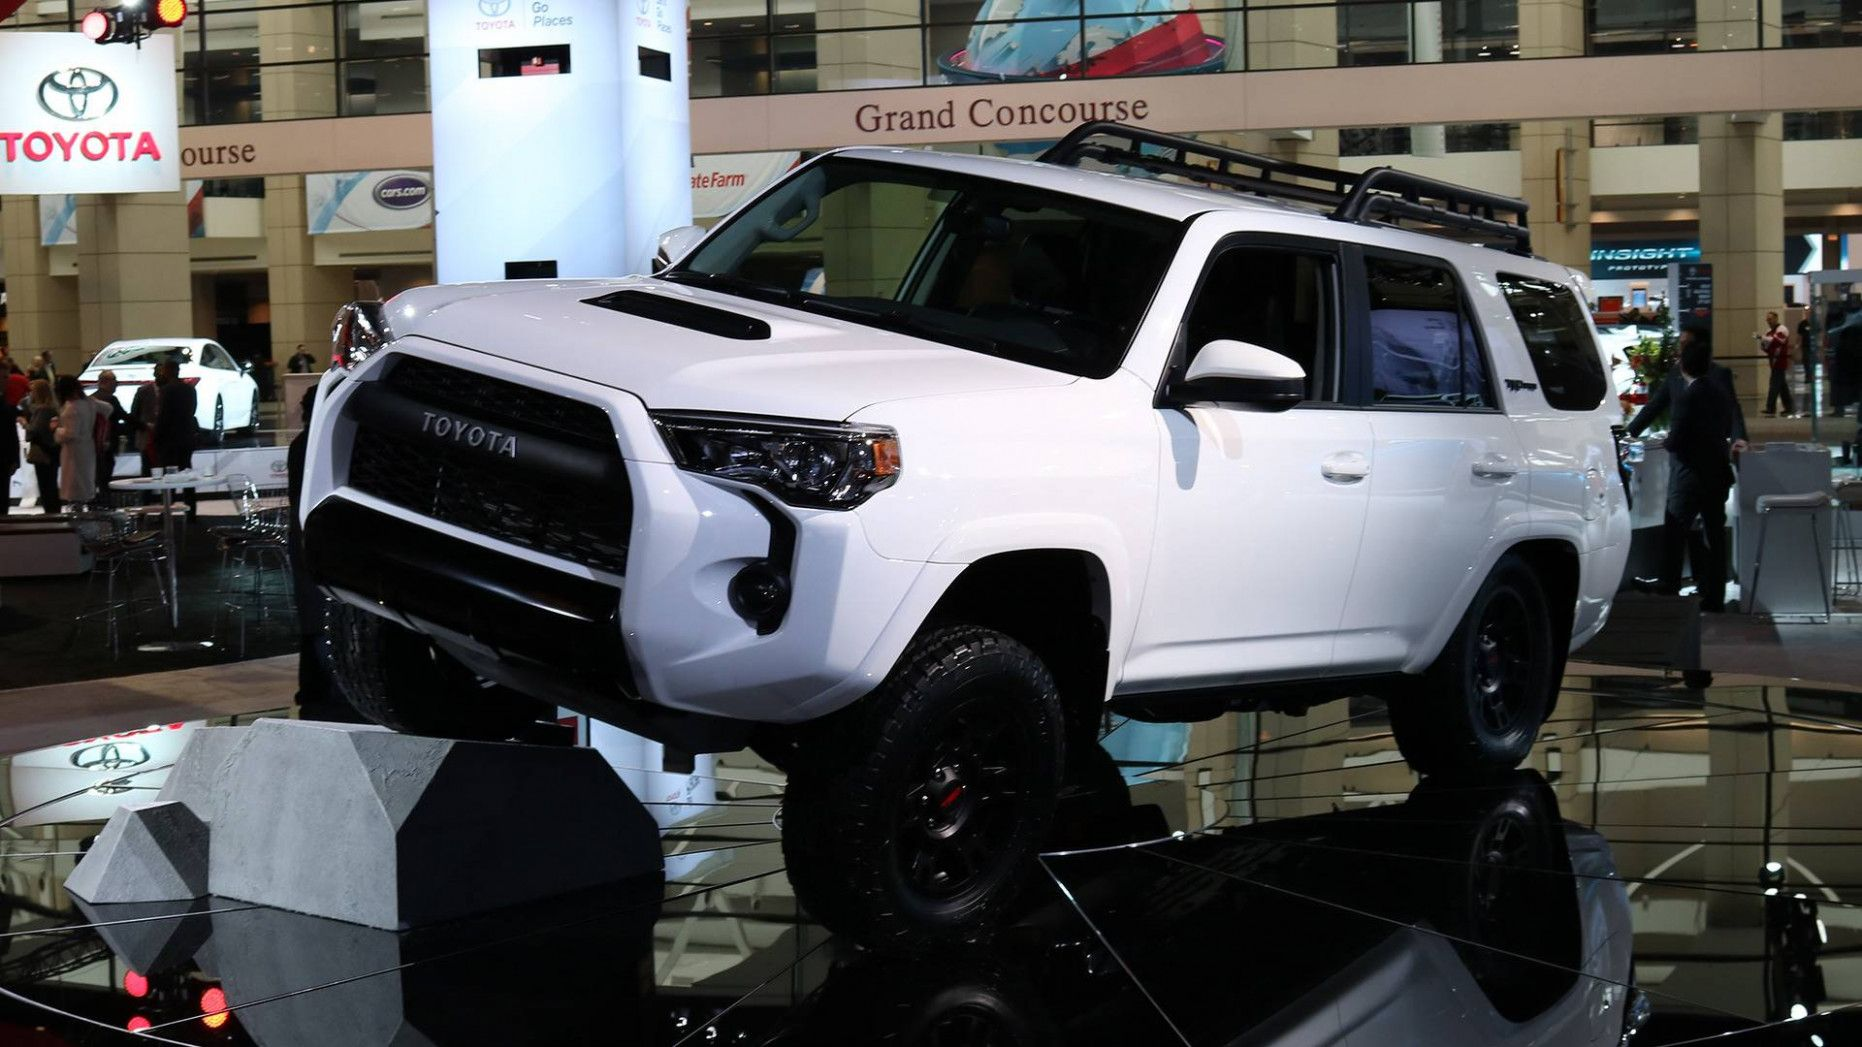 2020 Toyota 4runner Redesign In 2020 With Images Toyota 4runner 4runner Toyota 4runner Trd